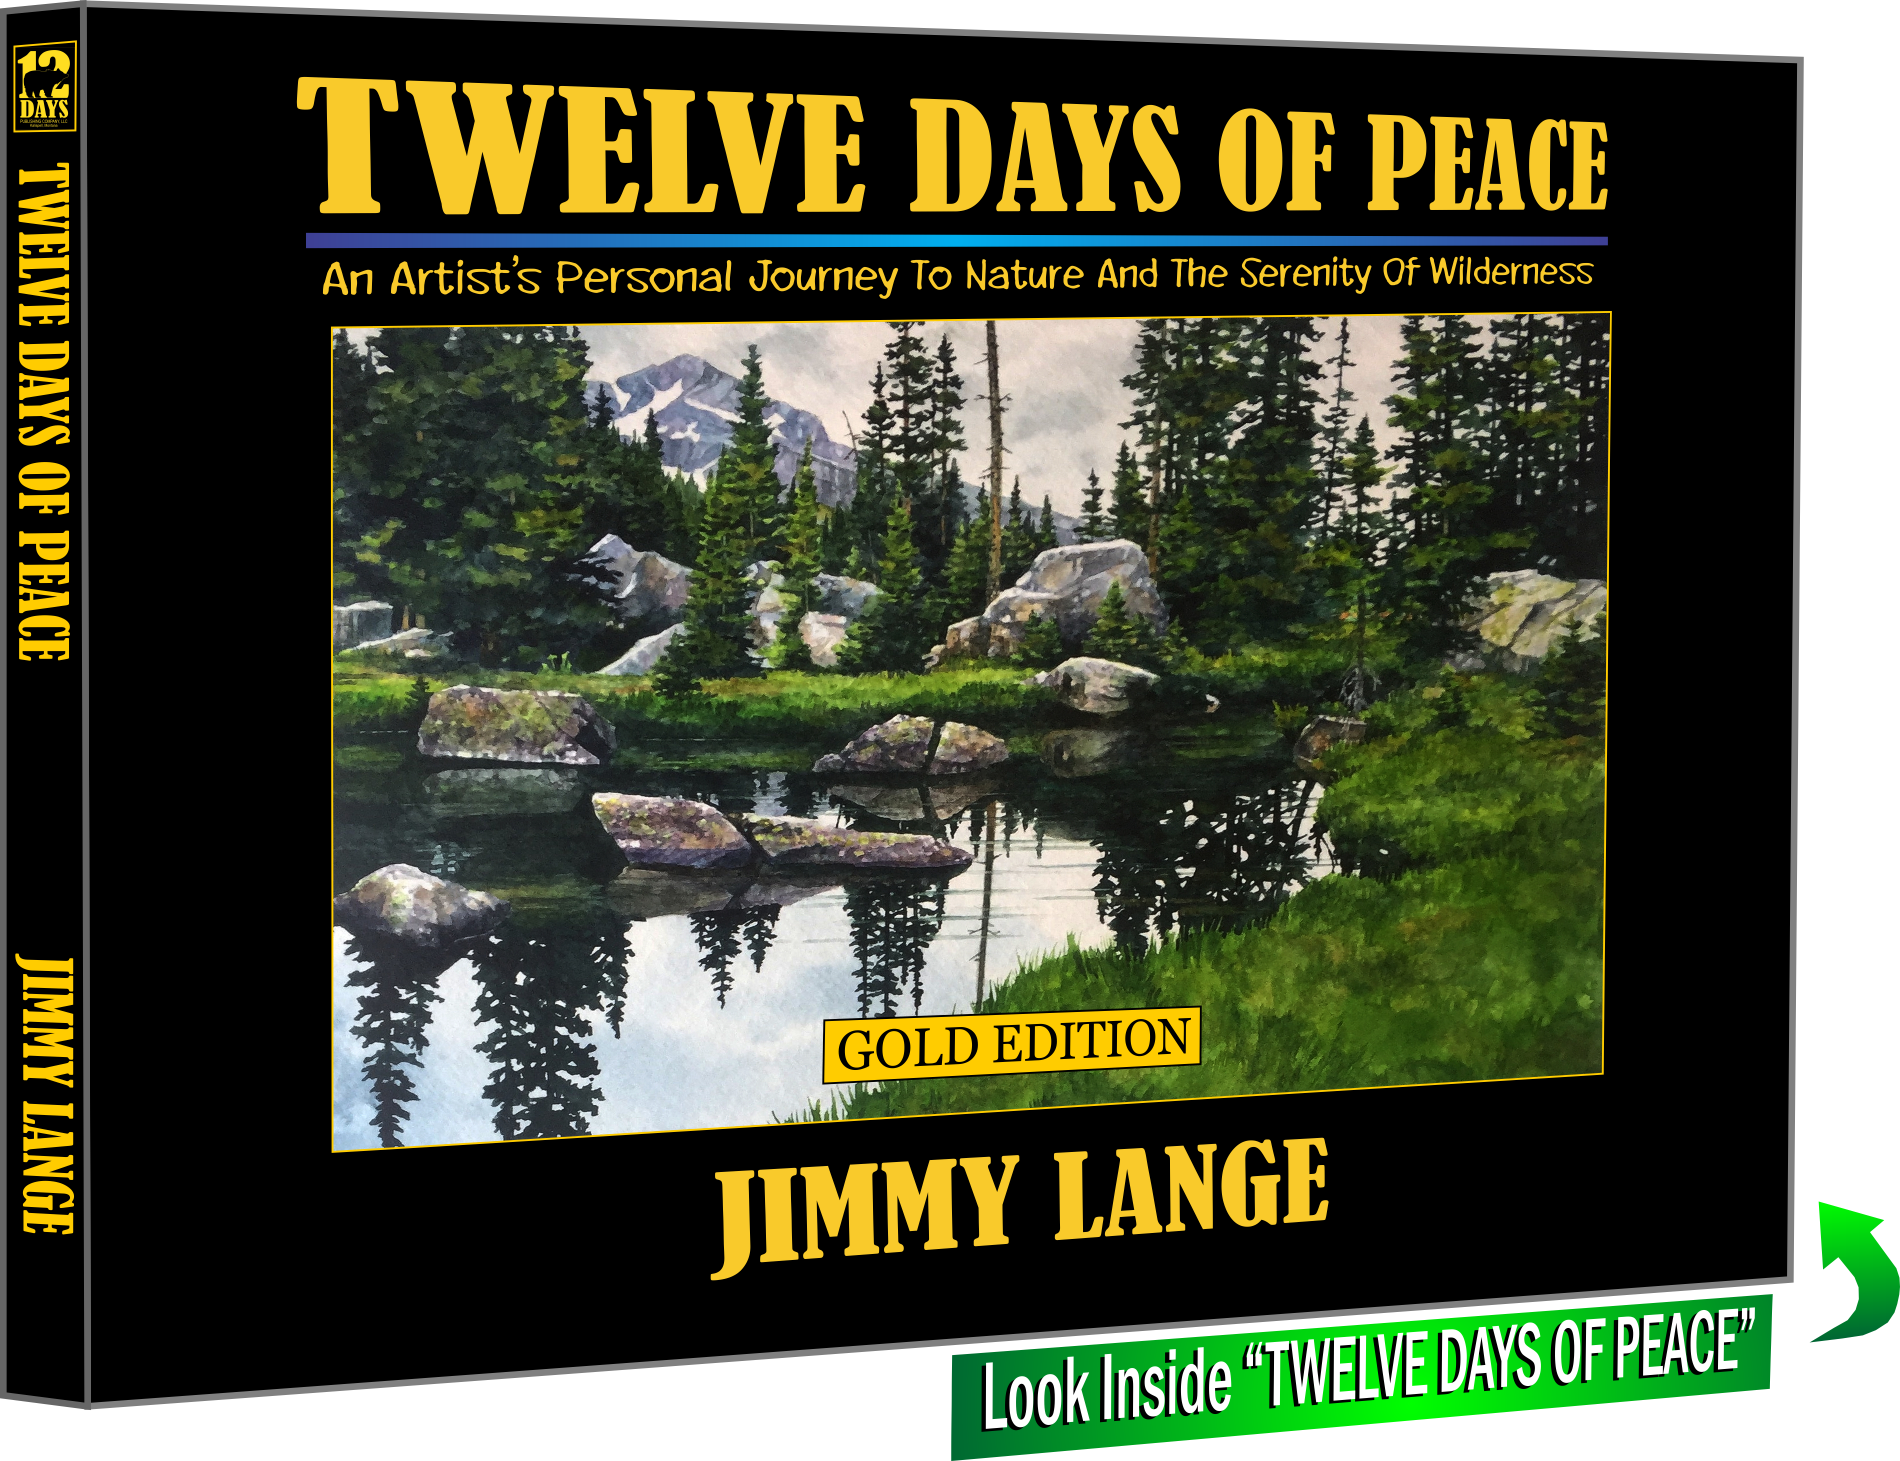 Image of book cover - Twelve Days of Peace by Jimmy Lange